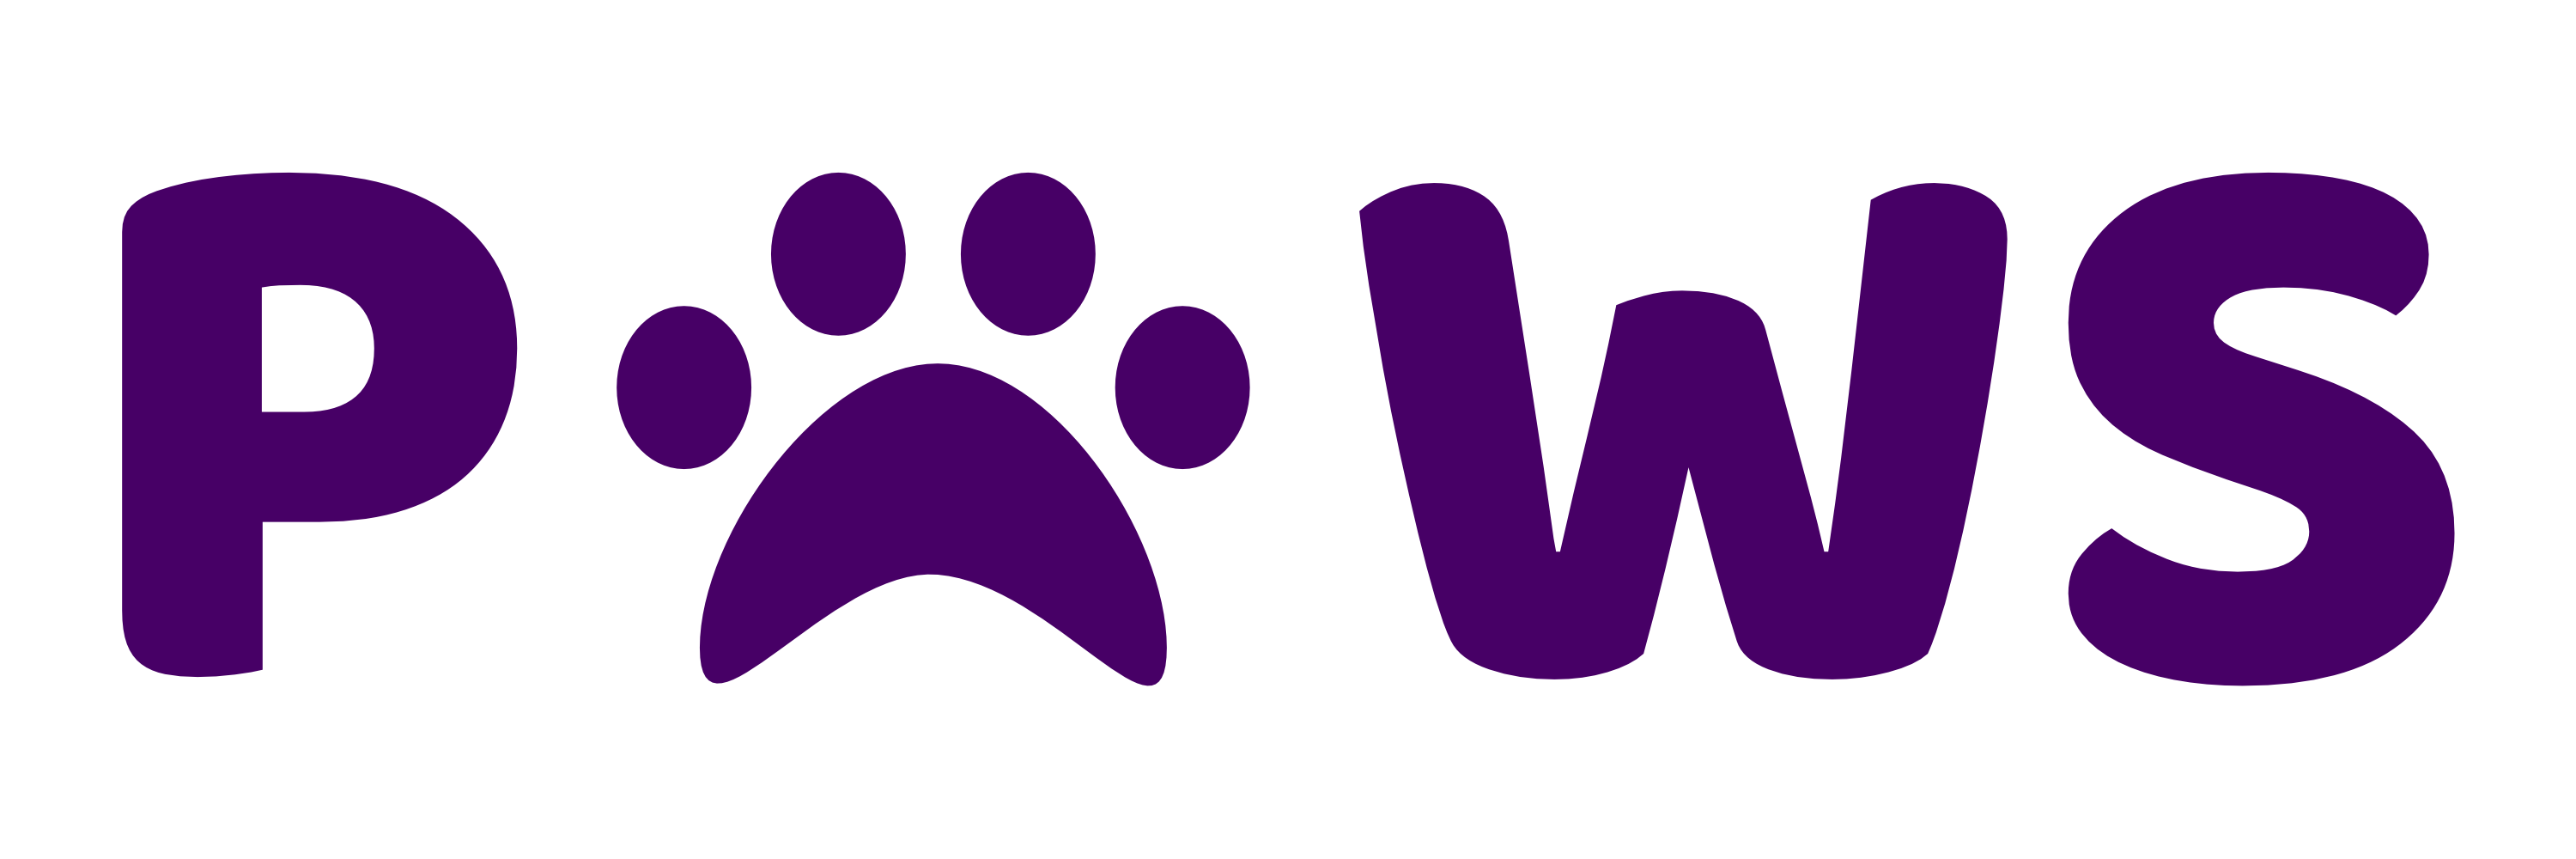 Paws Services